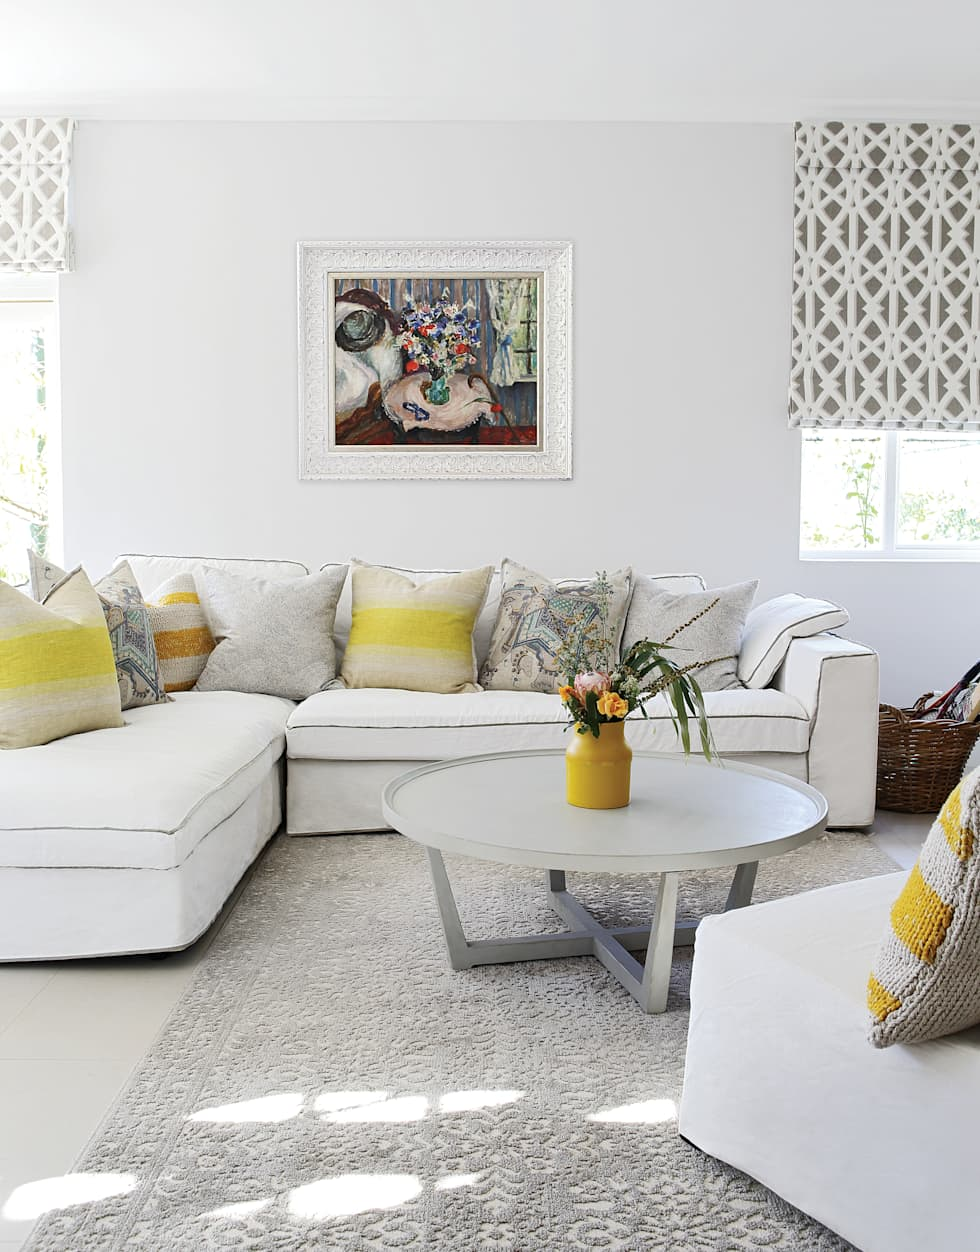 Guest Suite: eclectic Living room by Natalie Bulwer Interiors